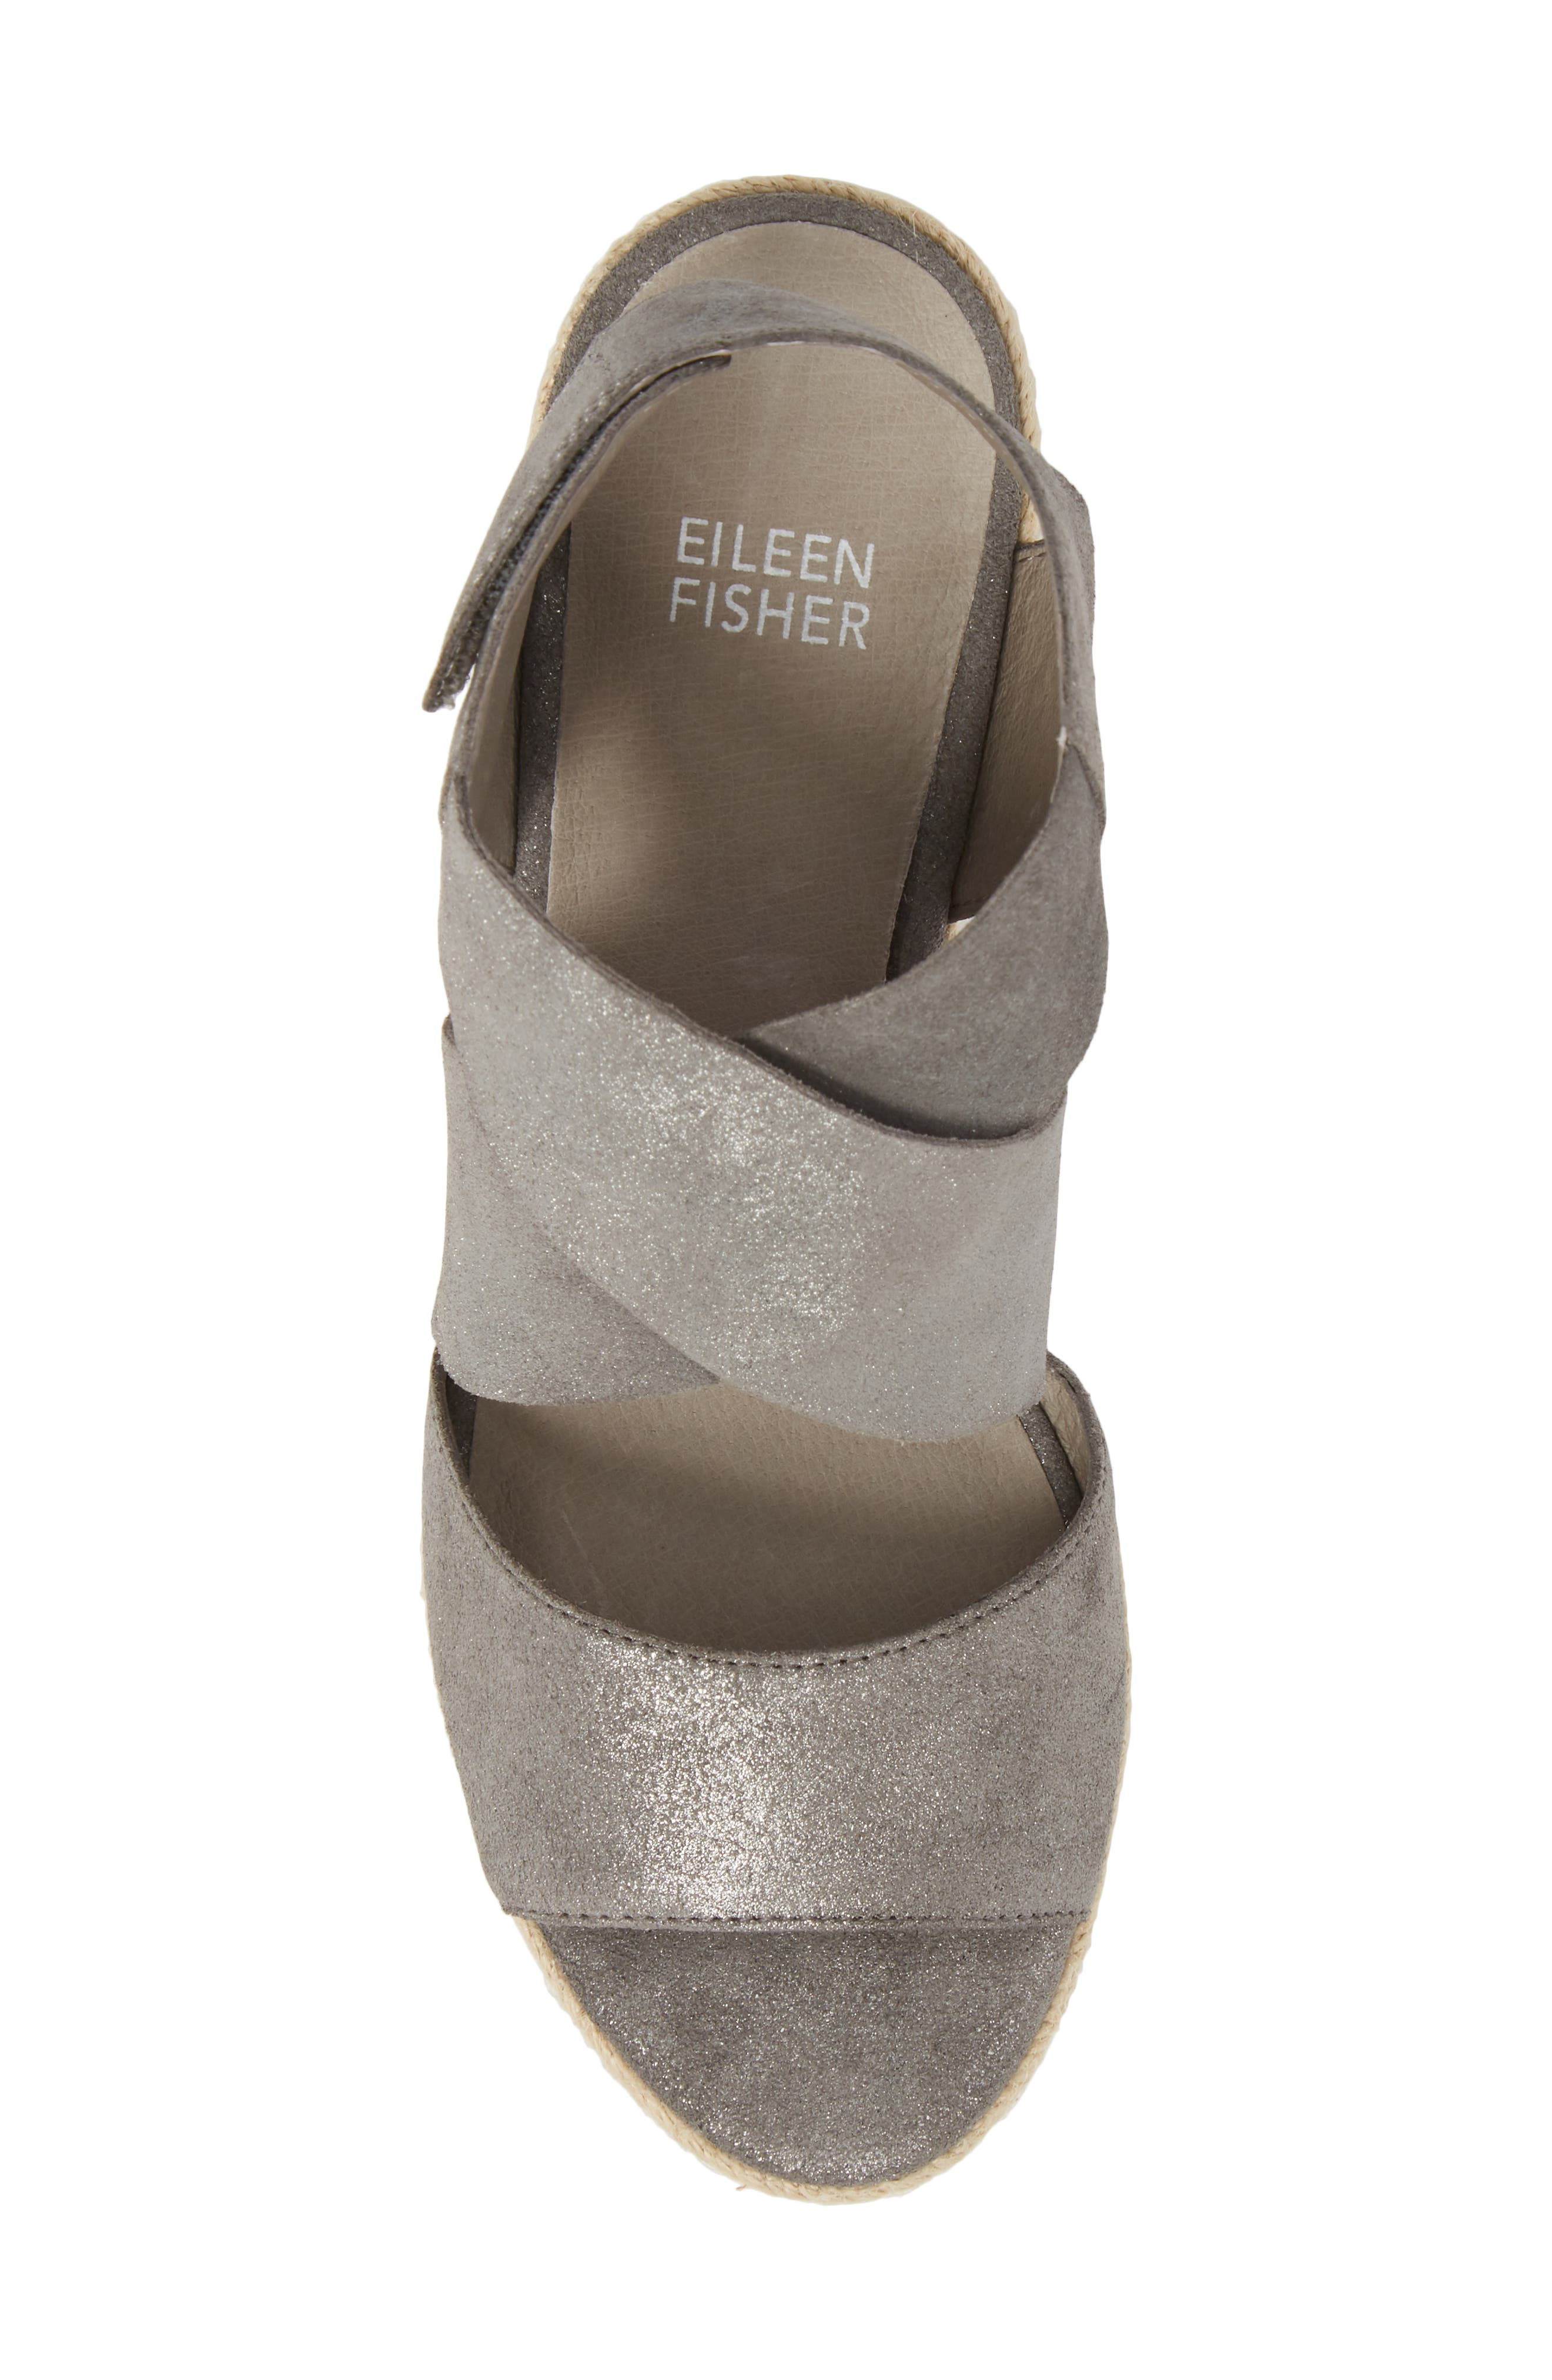 'Willow' Espadrille Wedge Sandal,                             Alternate thumbnail 5, color,                             Pewter Metallic Suede